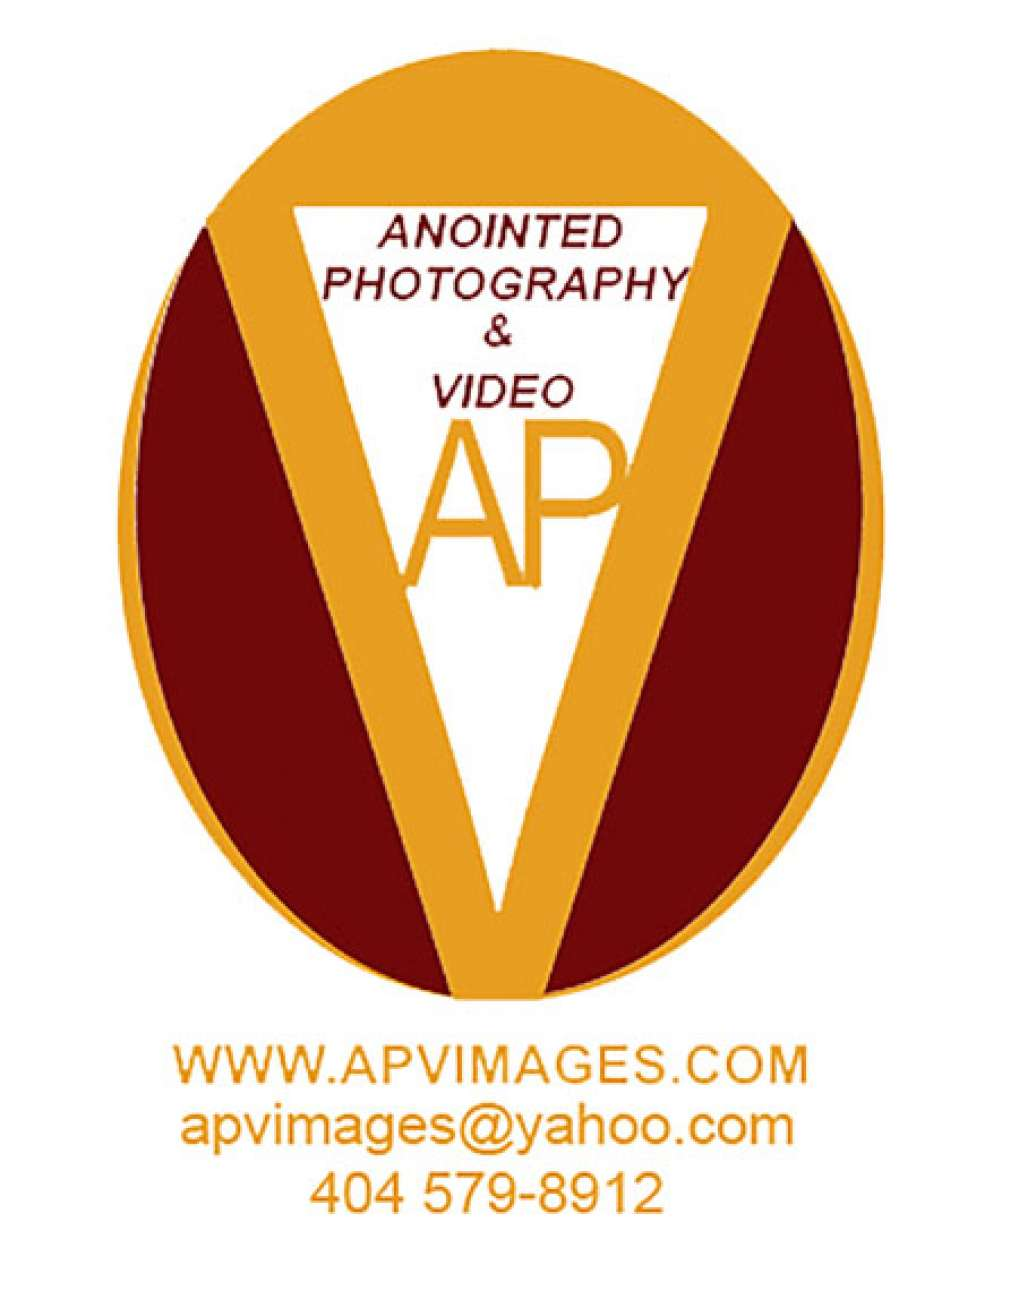 Anointed Photography & Video